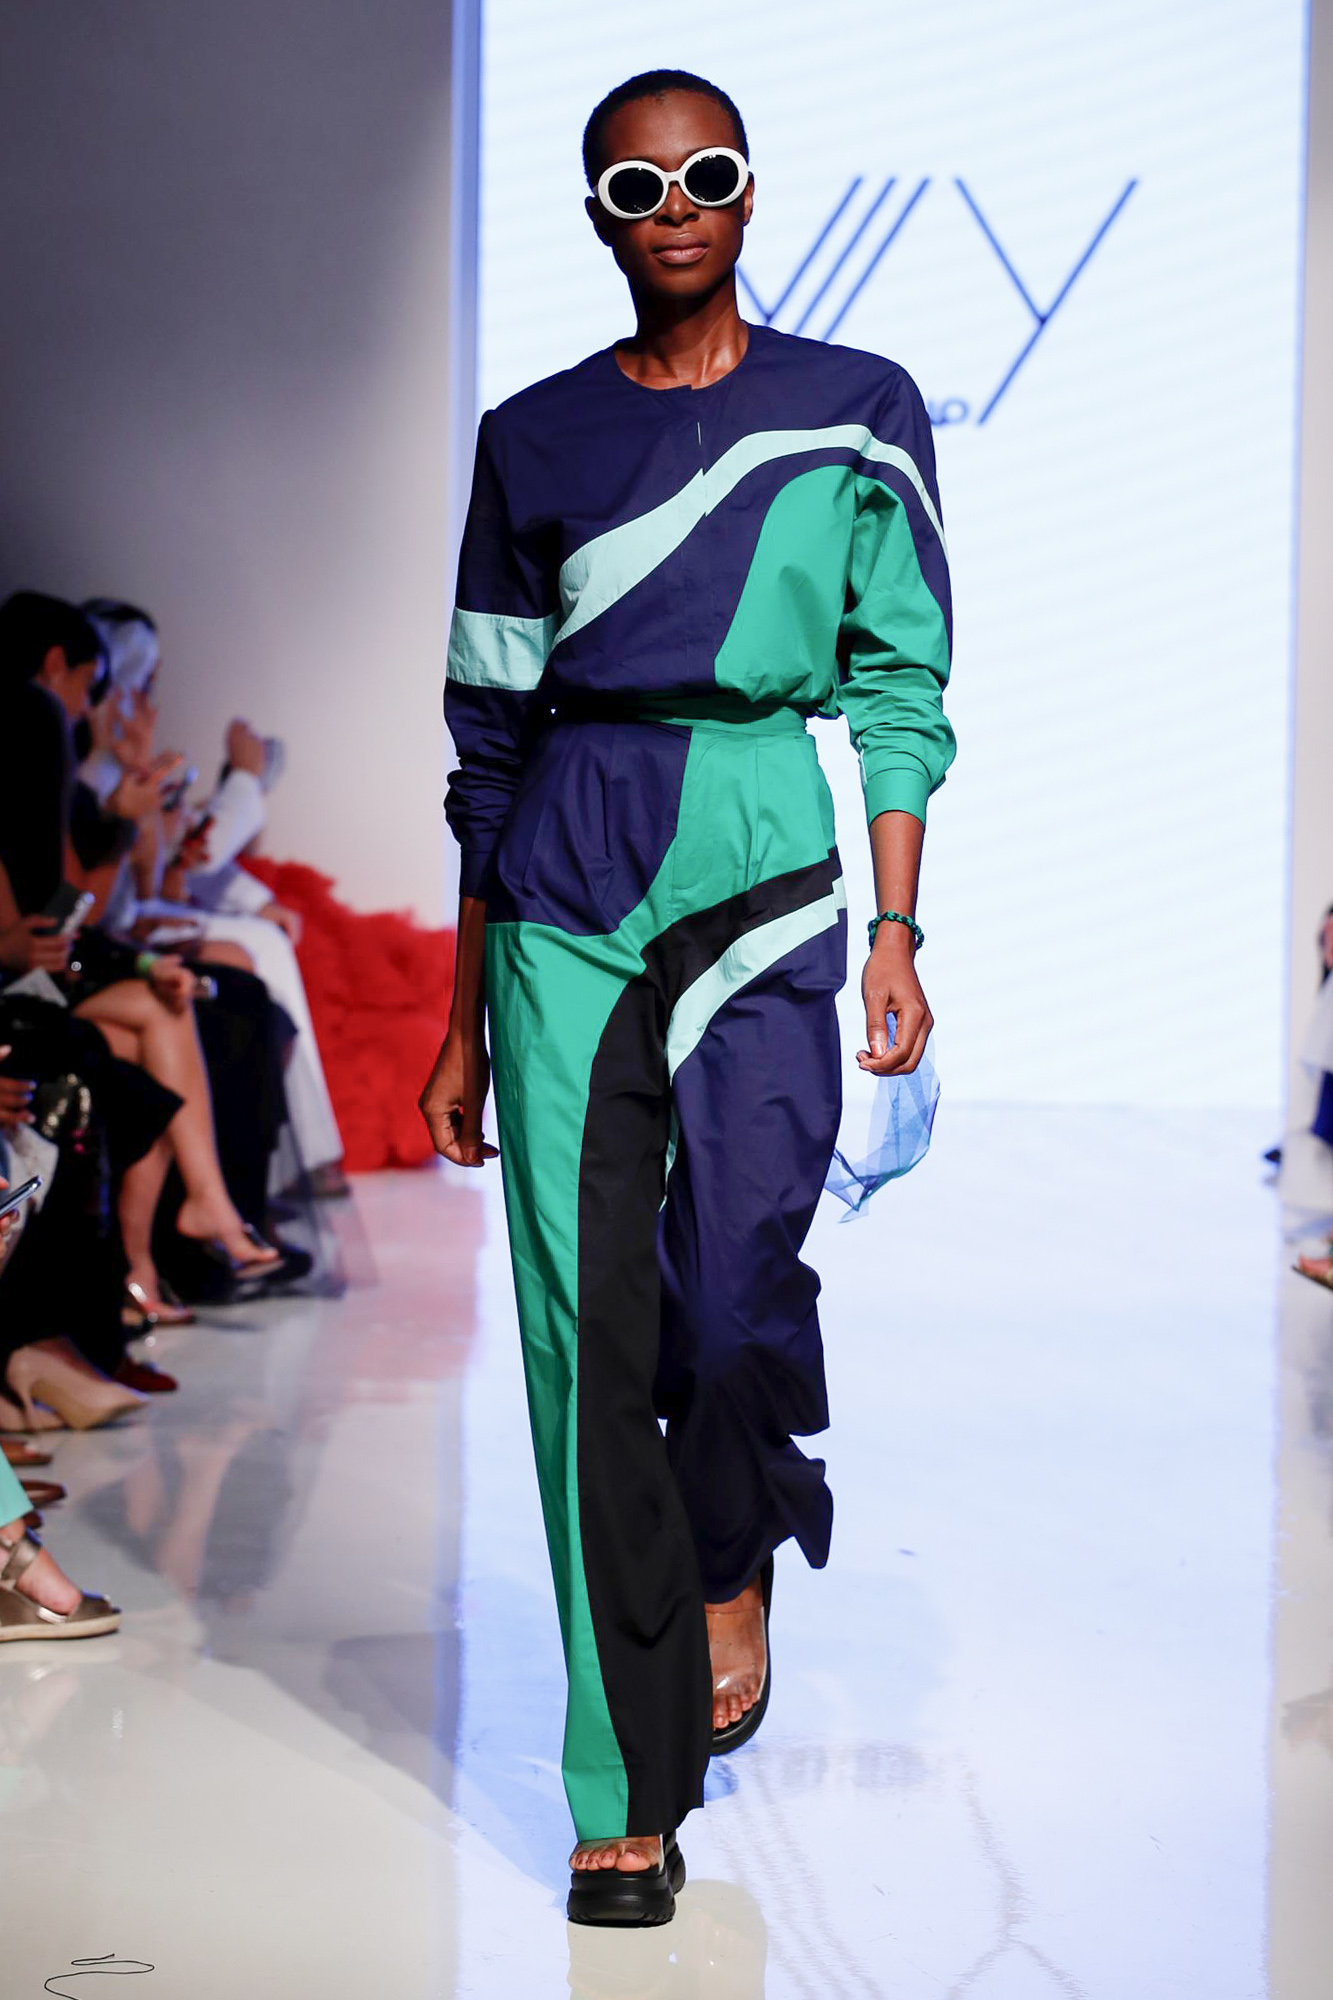 YLY-Studio-Arab-Fashion-Week-SS20-Dubai-5780